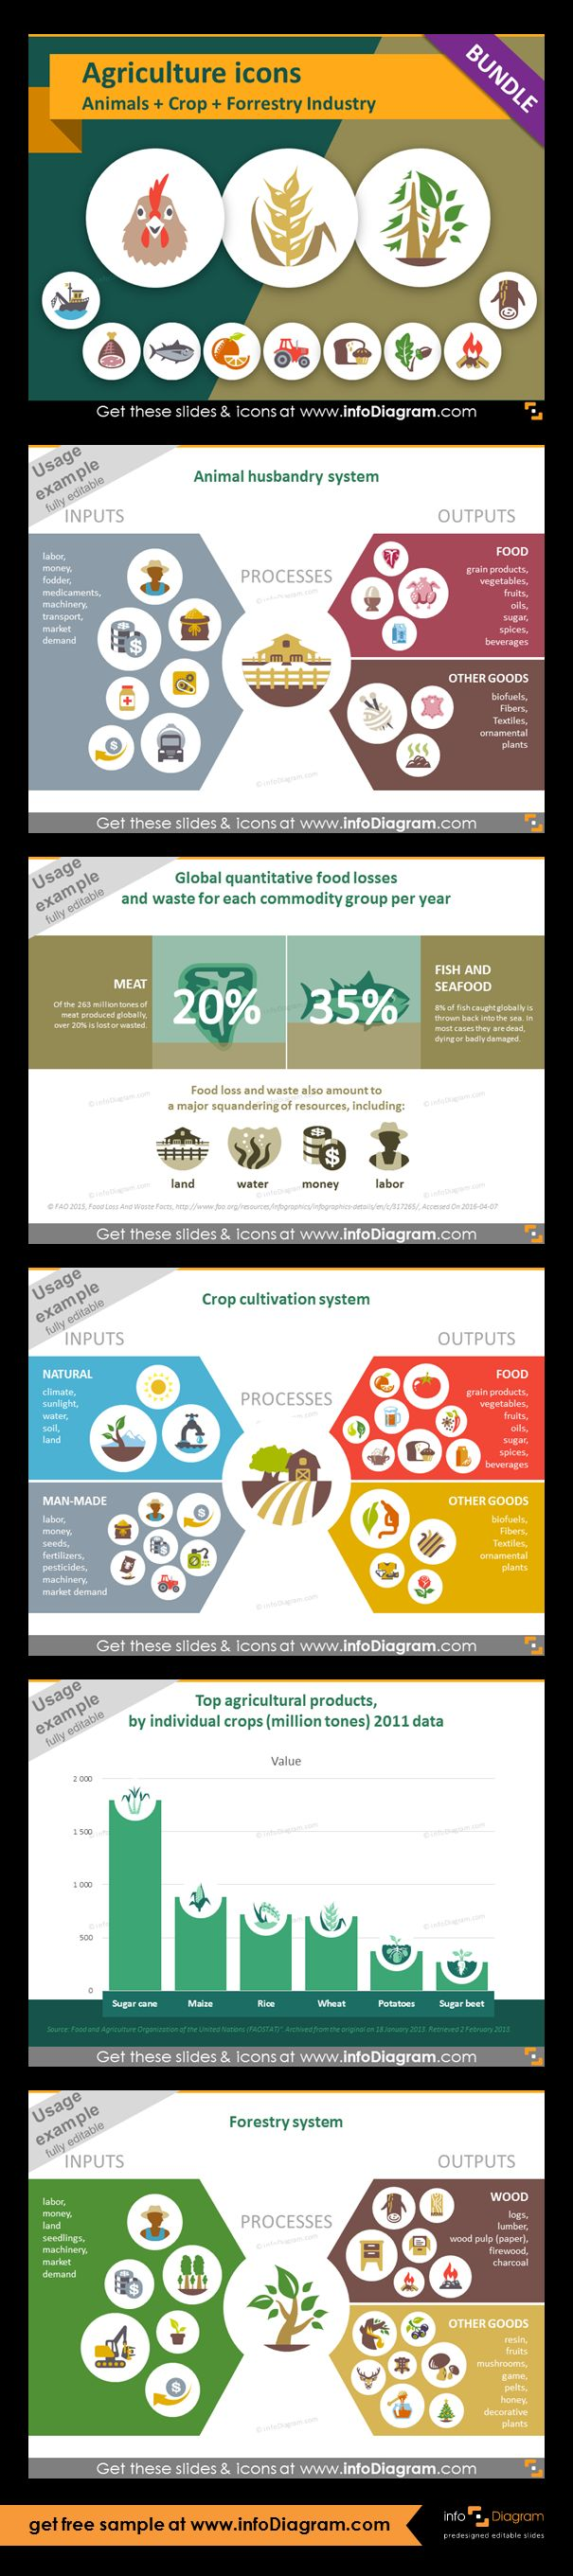 Food and Agriculture icons: Animals, Crop Cultivation, Forestry. All symbols in simple flat style, suitable for Metro UI style graphics. Icons provided in 5 versions. Slide presenting animal husbandry system. Graphic presenting crop cultivation process with icons of inputs and outputs. Graphic presenting forestry process with icons of inputs and outputs. Global quantitative food losses and waste per year slide. Top agricultural products chart and statistics of global quantitative food…